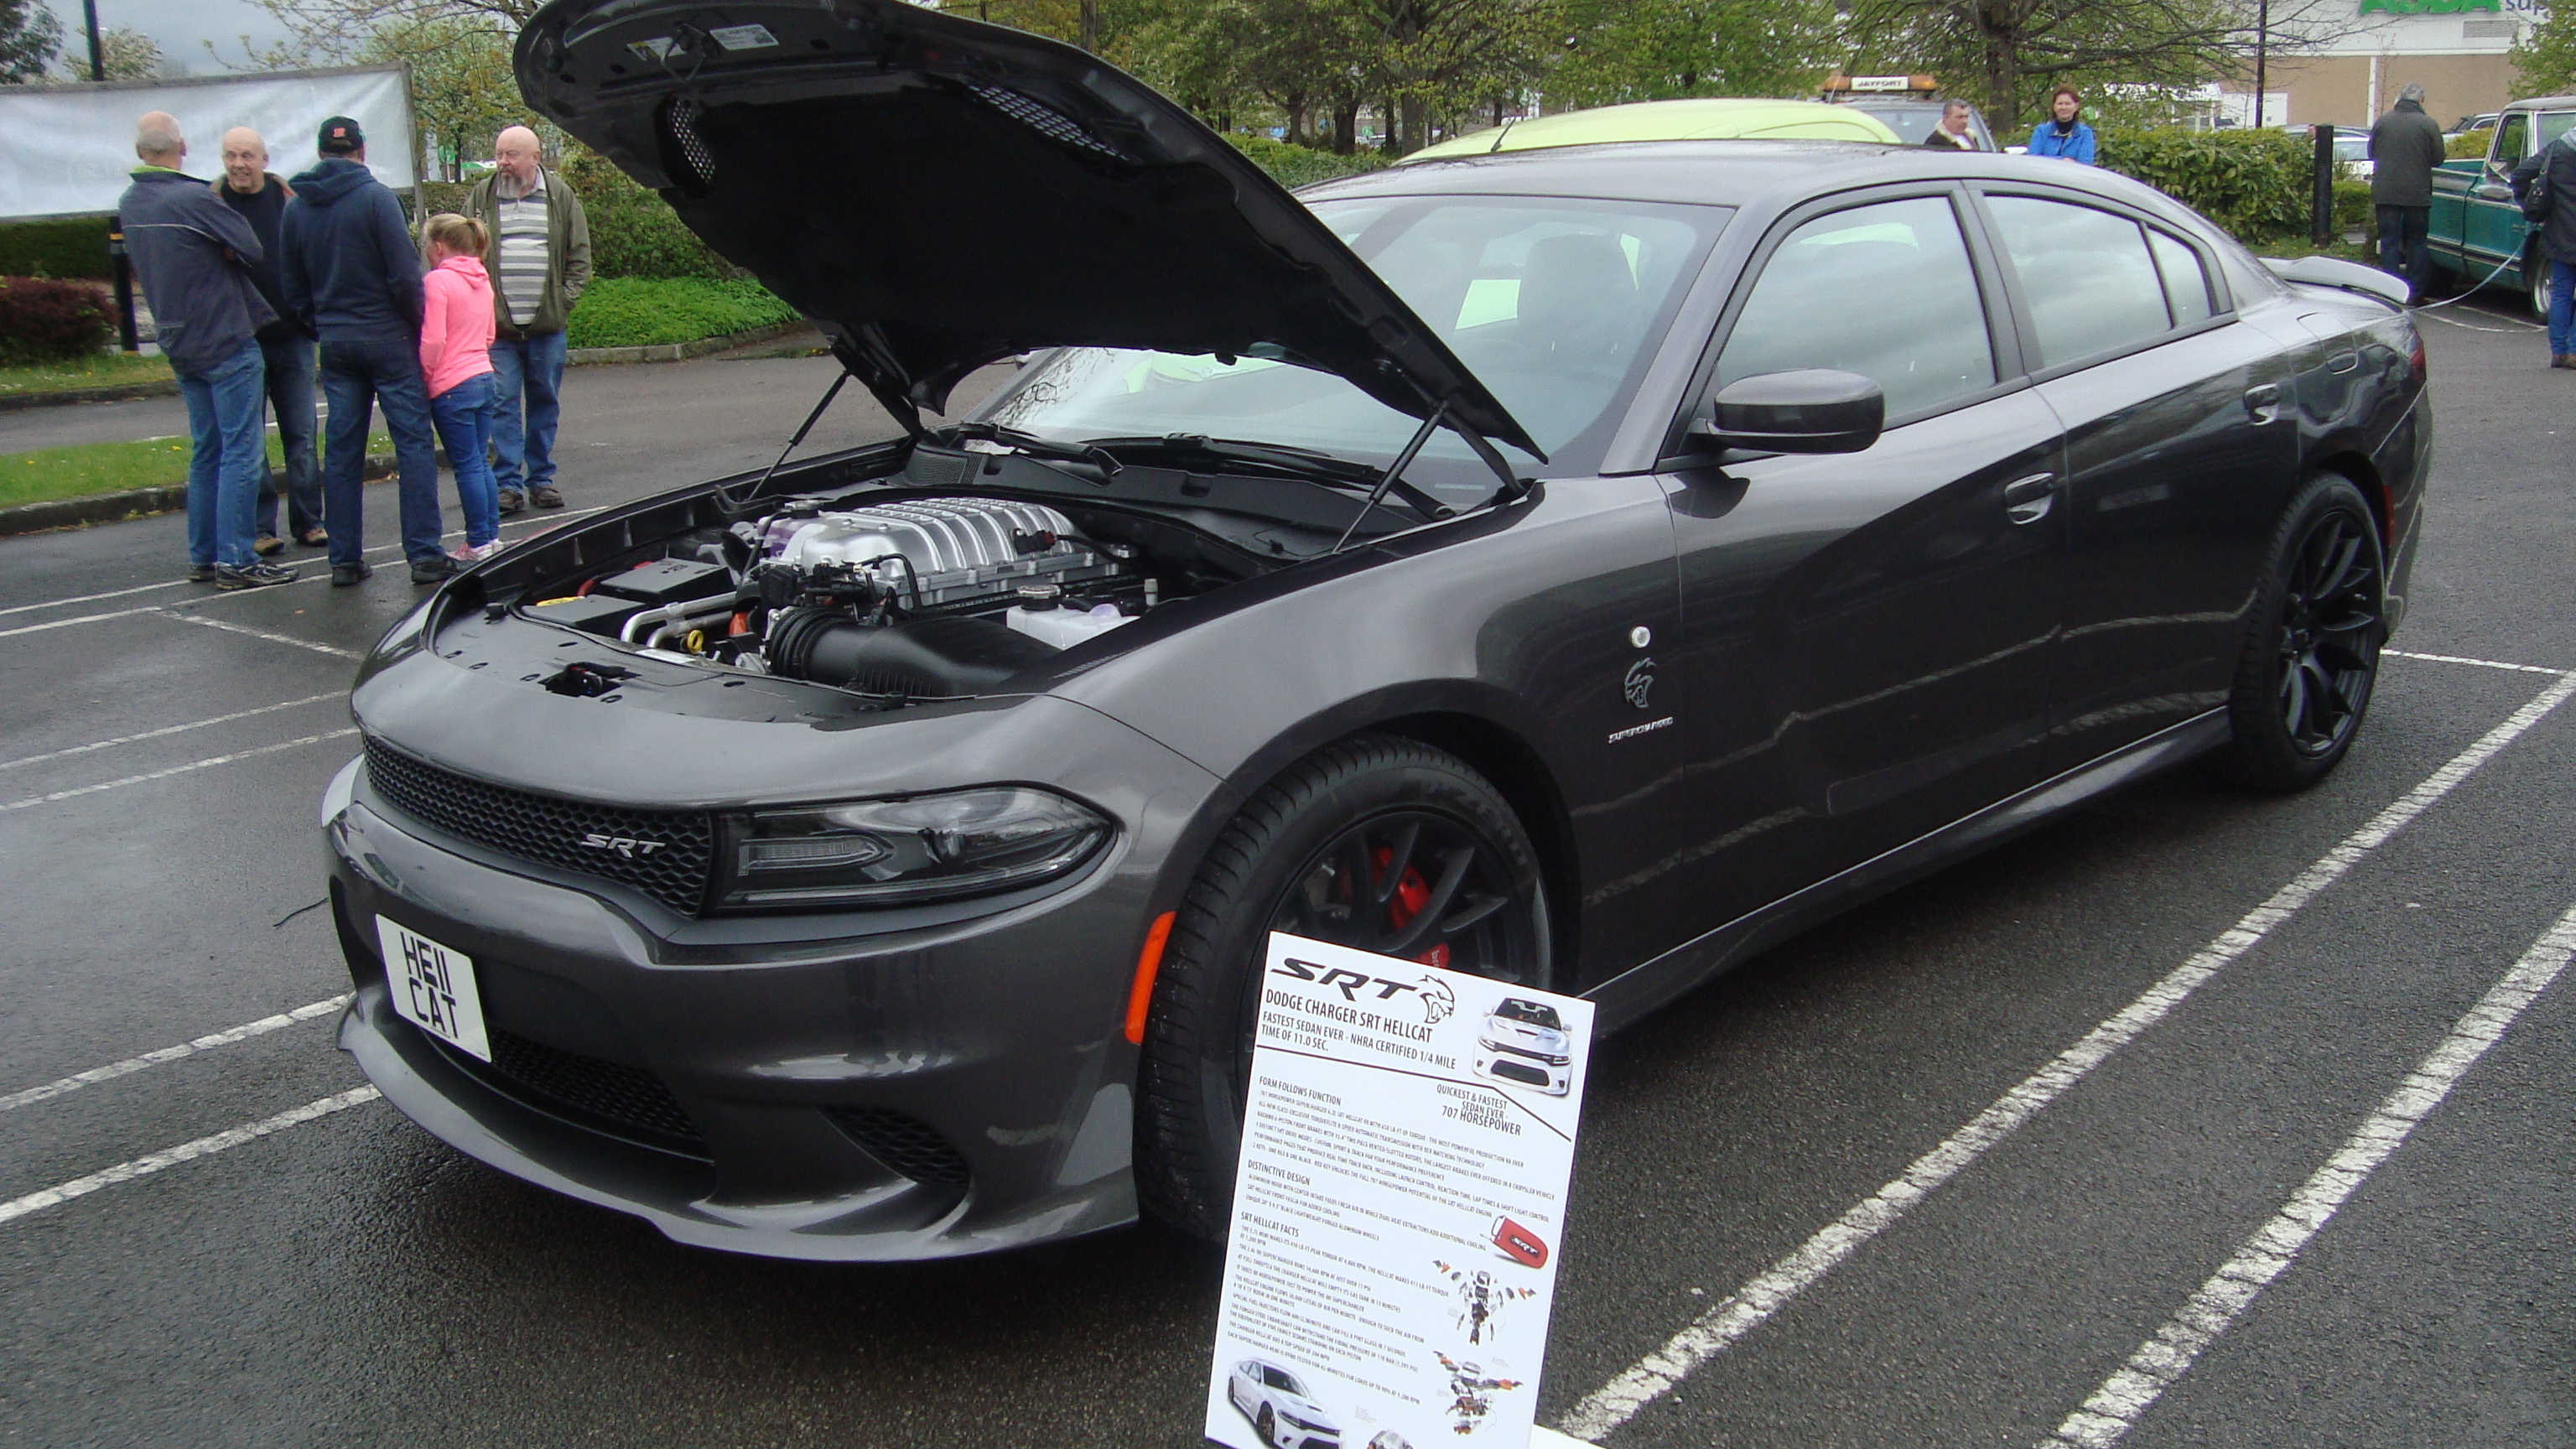 17 Charger Hellcat >> File Dodge Charger Srt Hellcat 17679885049 Jpg Wikimedia Commons